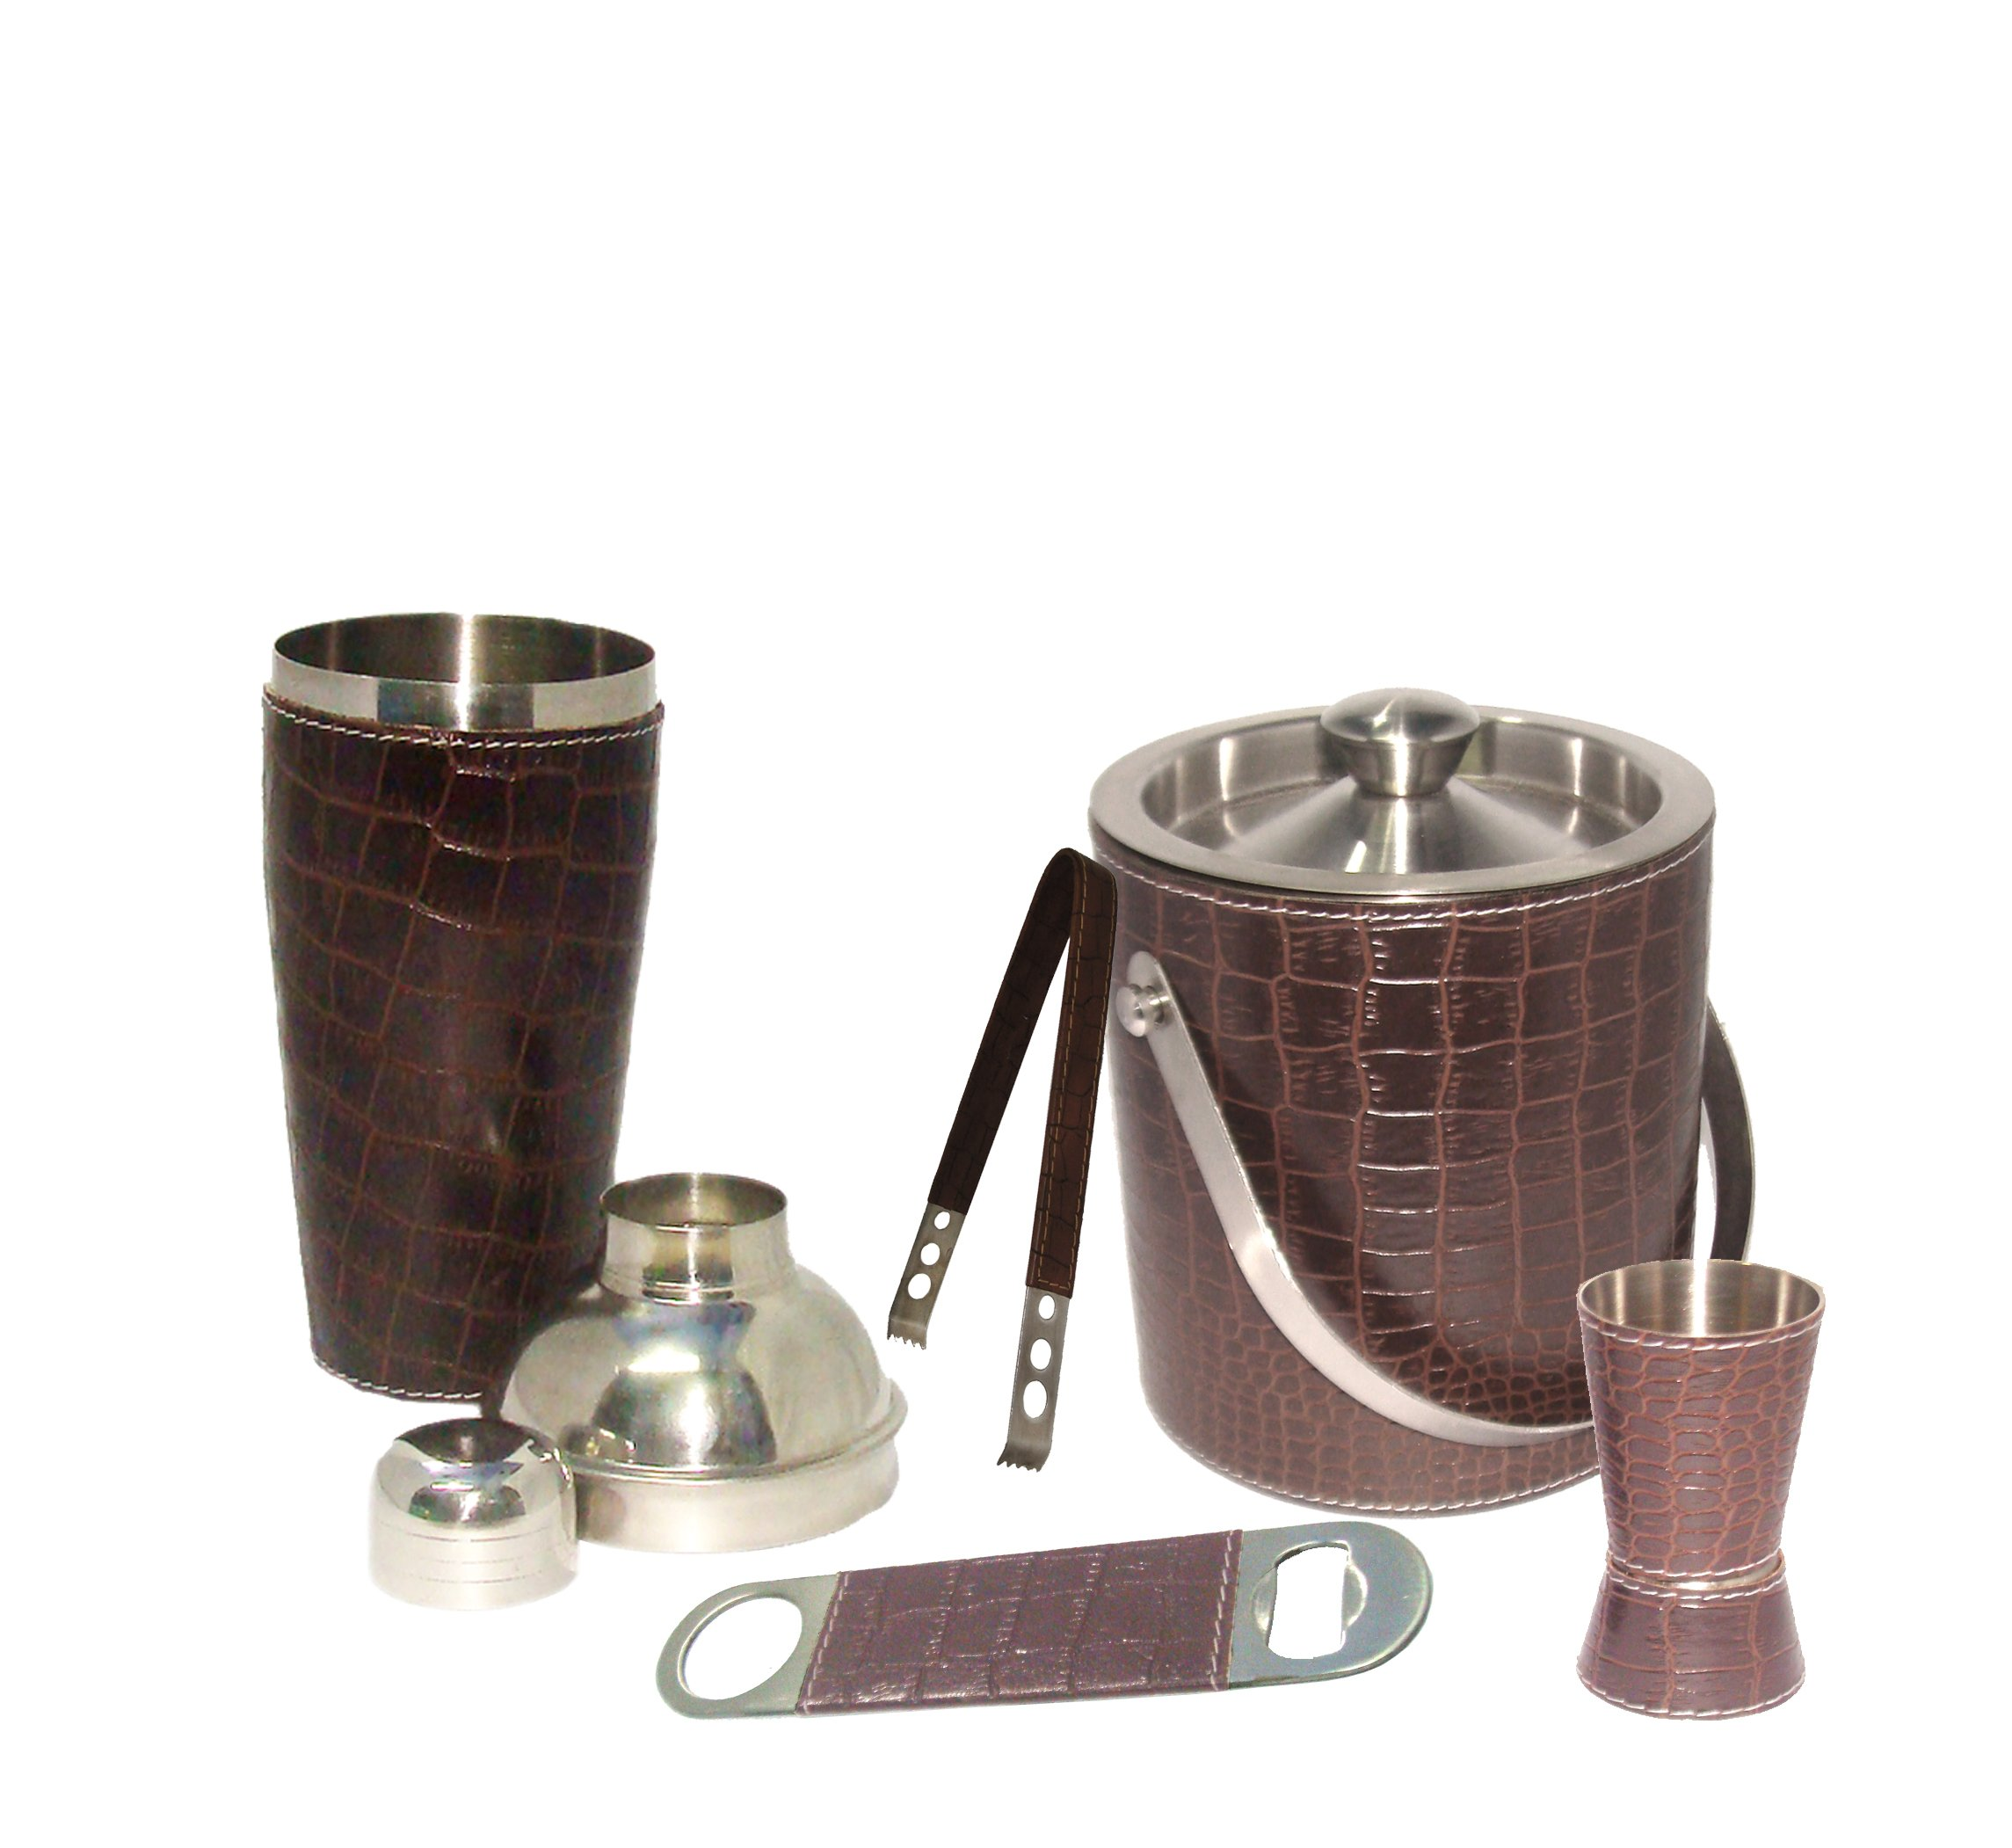 King International 100% Stainless Steel Premium Leather Bar Set | Bar Tools | Bar Accessories | Combo of 5 Pieces | Ice Bucket 1750 ml | Jigger 4.4 cm 3060 ml | Ice Tong 16.5 cm and Opener 14 cm